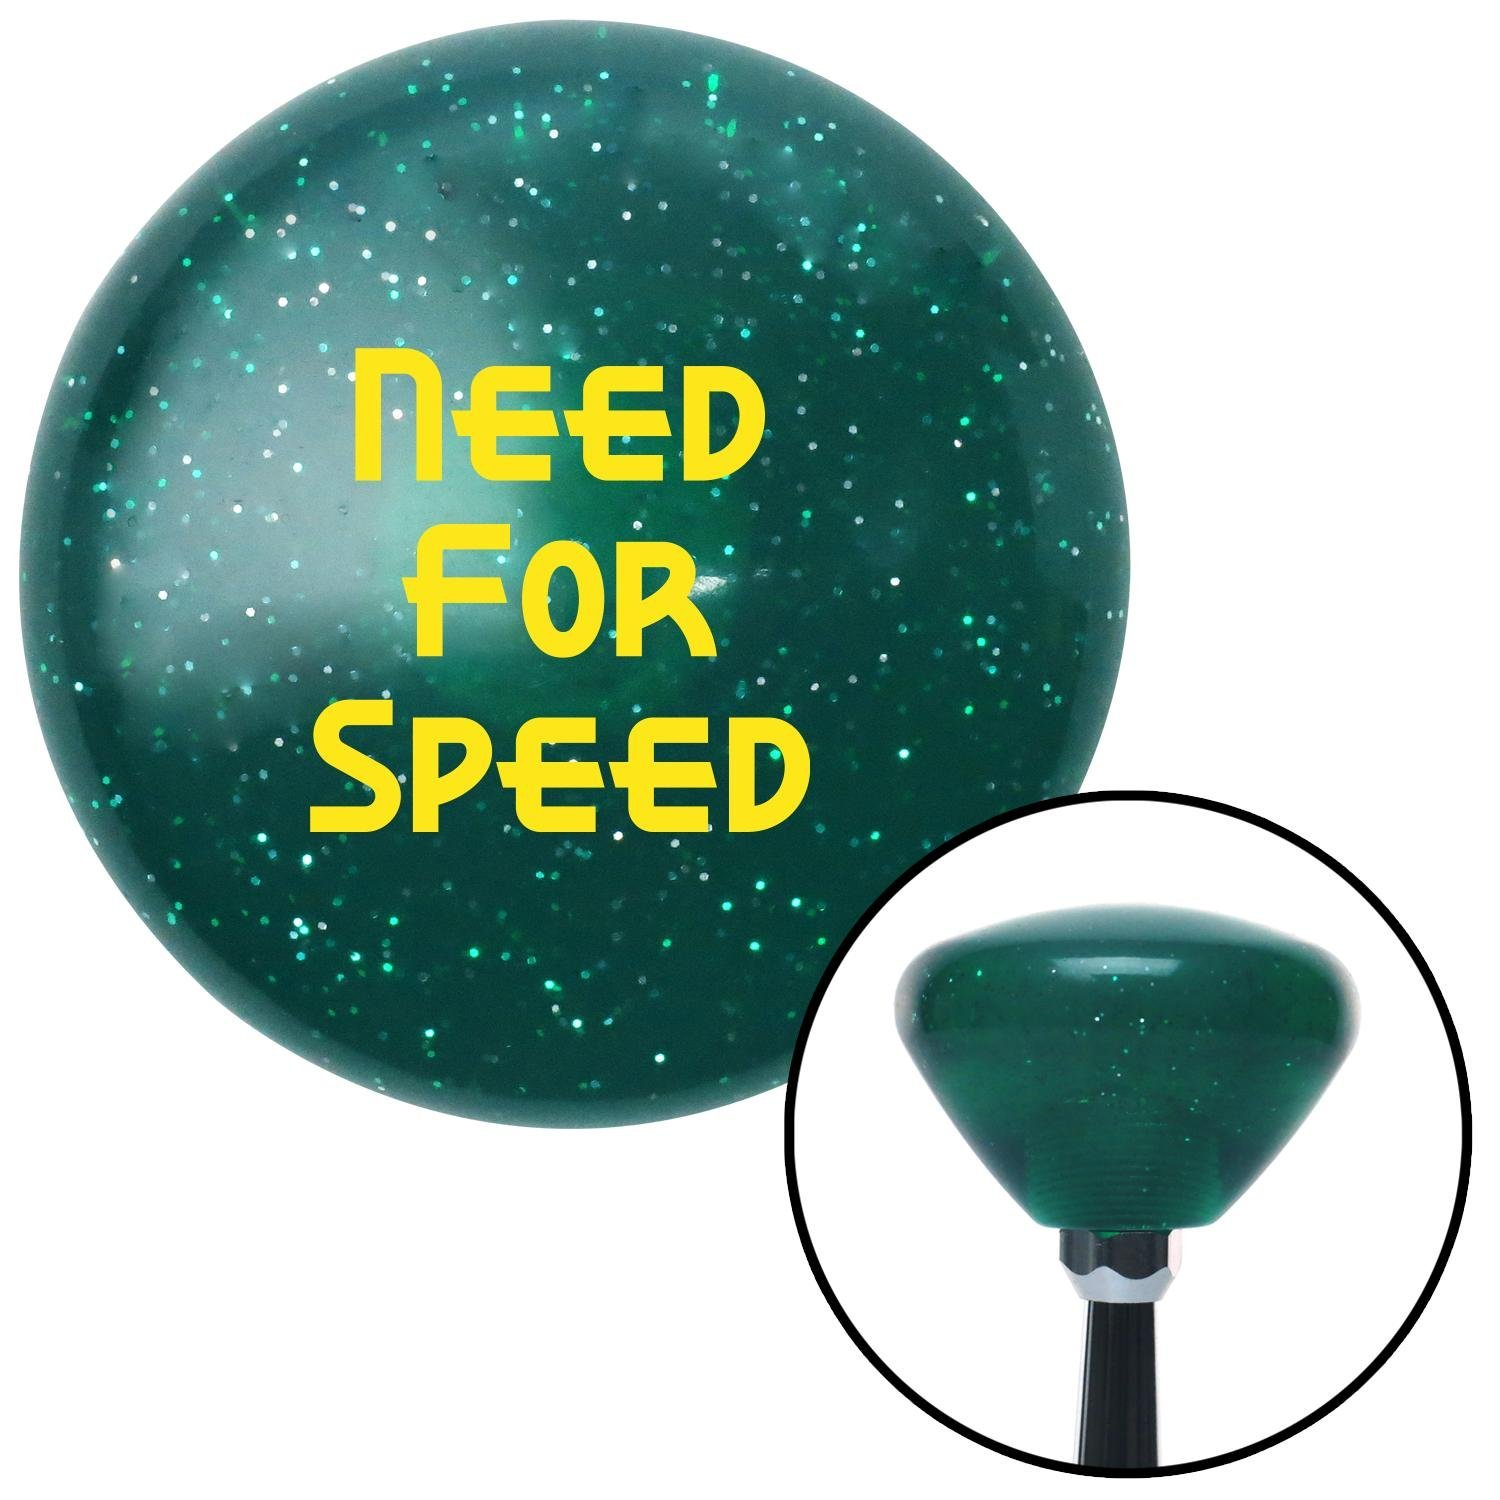 Yellow Need for Speed American Shifter 205806 Green Retro Metal Flake Shift Knob with M16 x 1.5 Insert